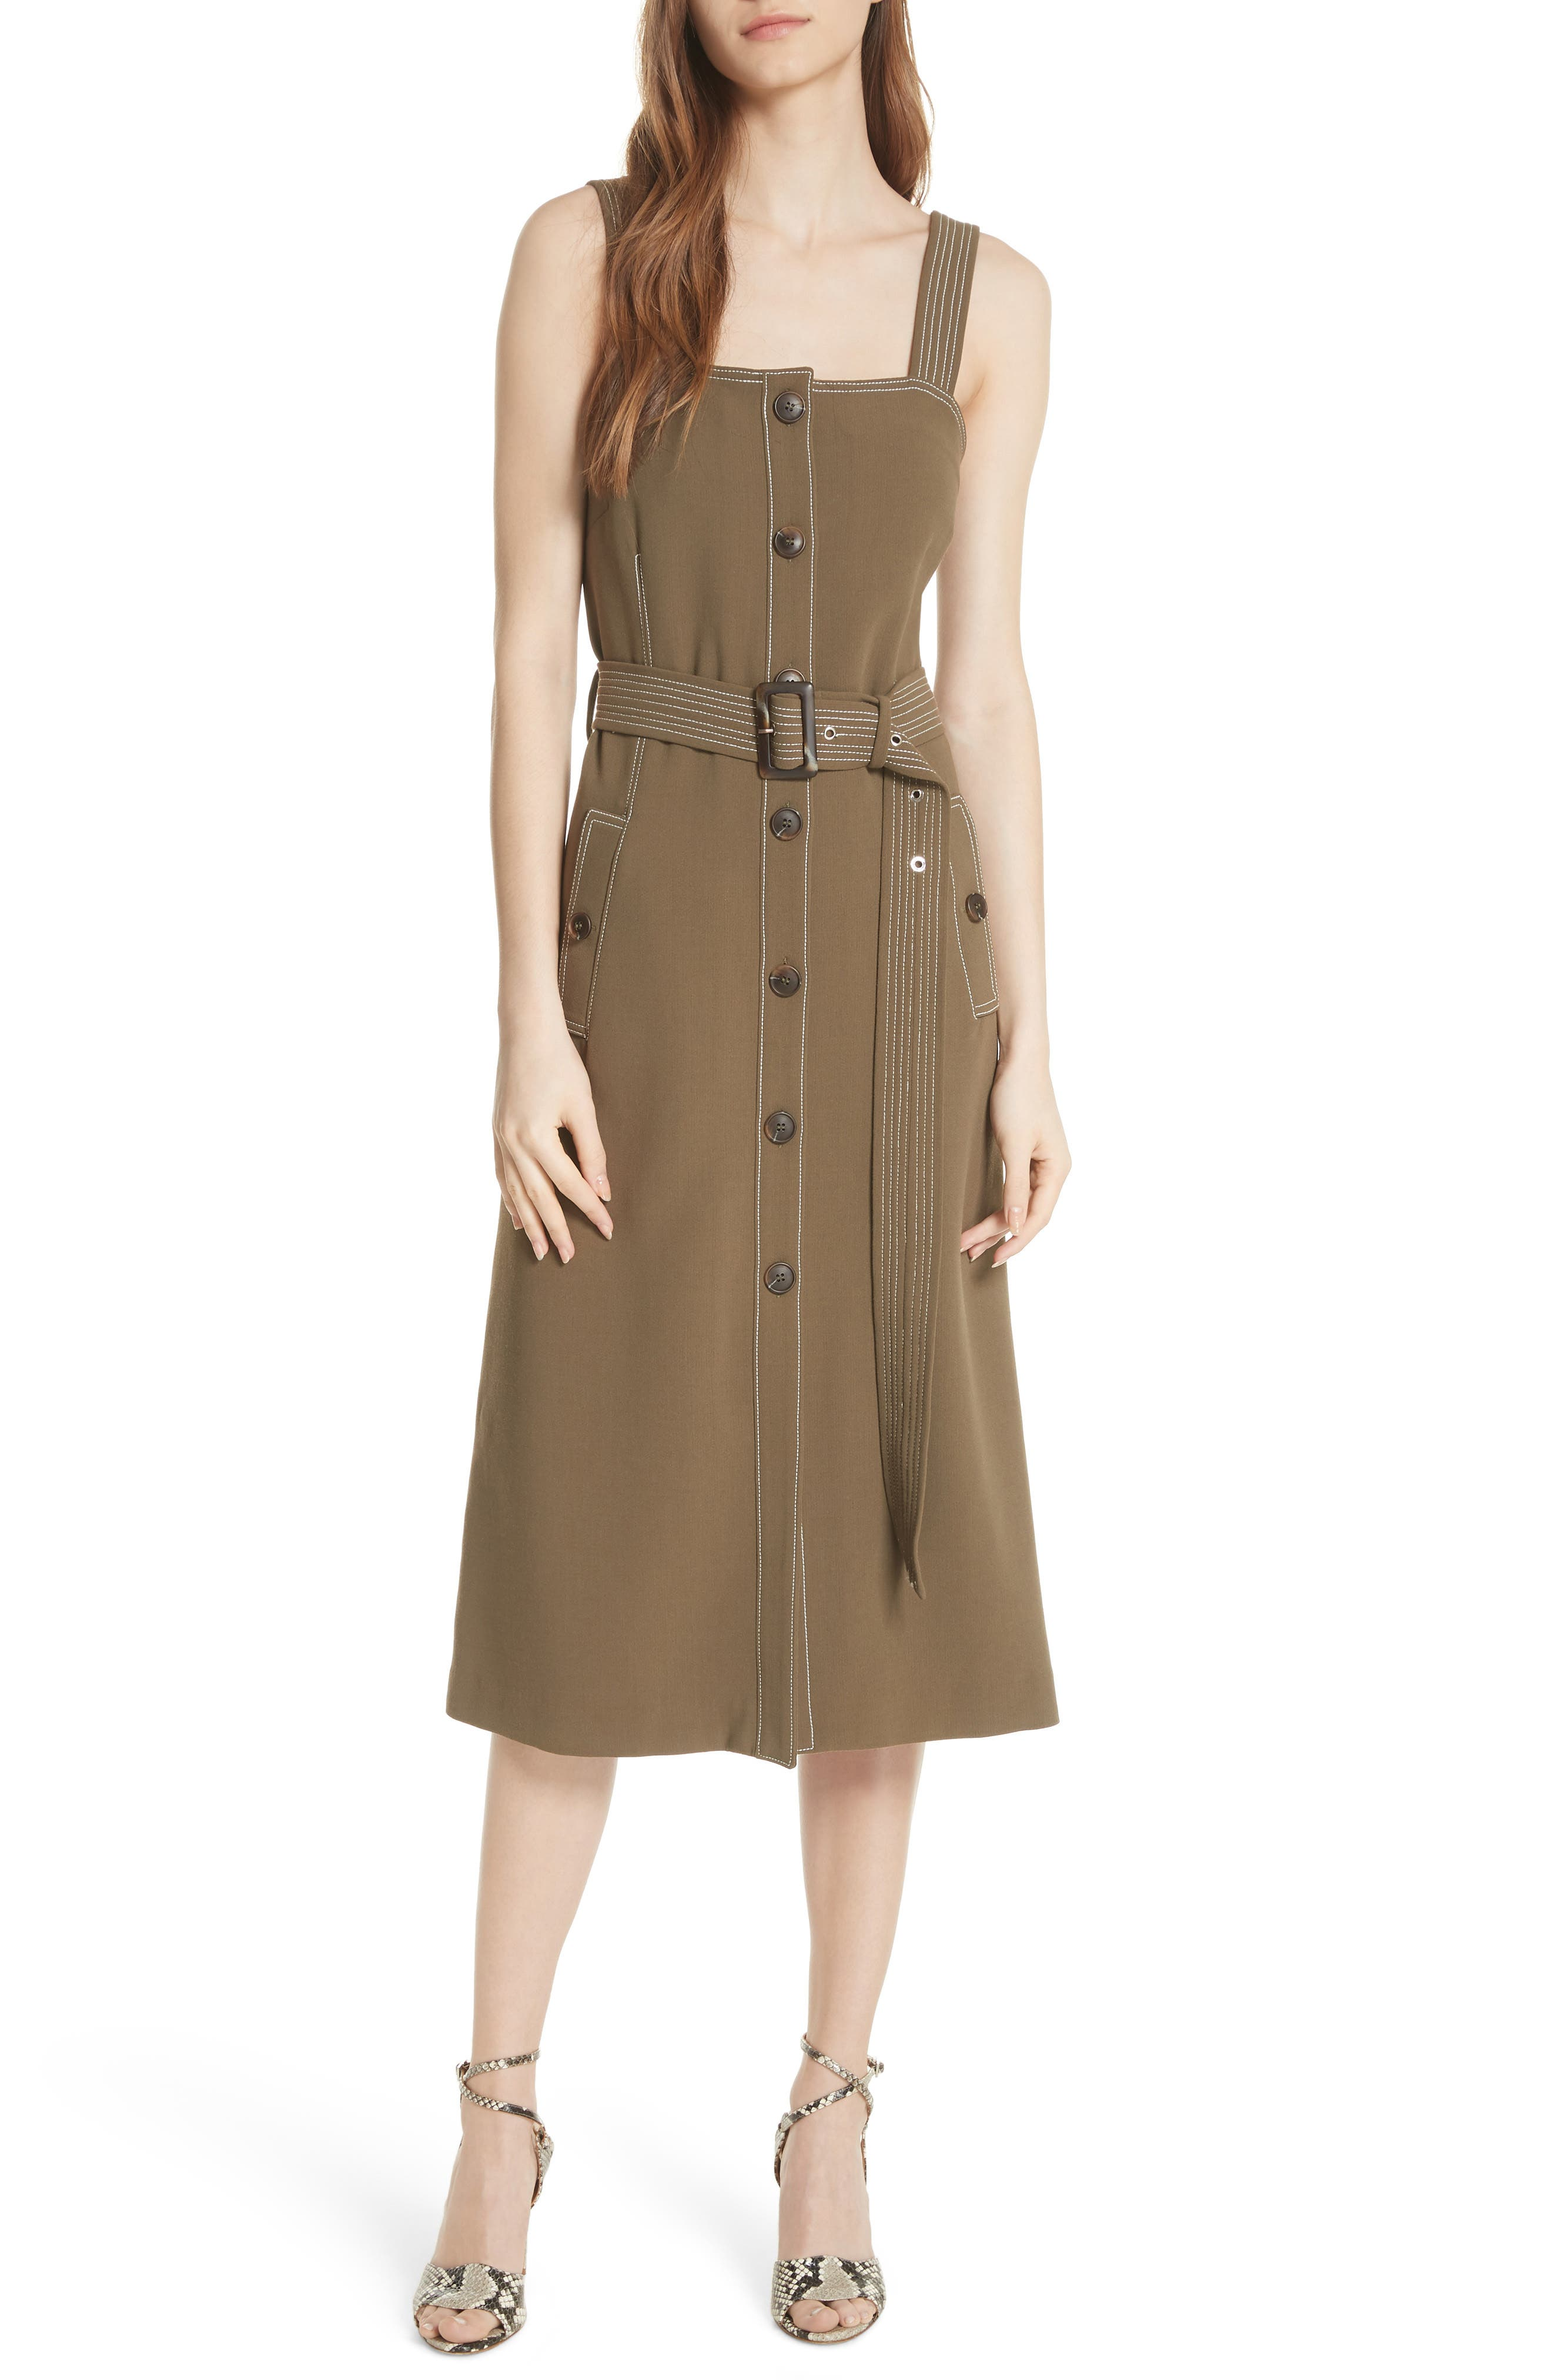 Adora Belted Dress,                         Main,                         color, ARMY GREEN